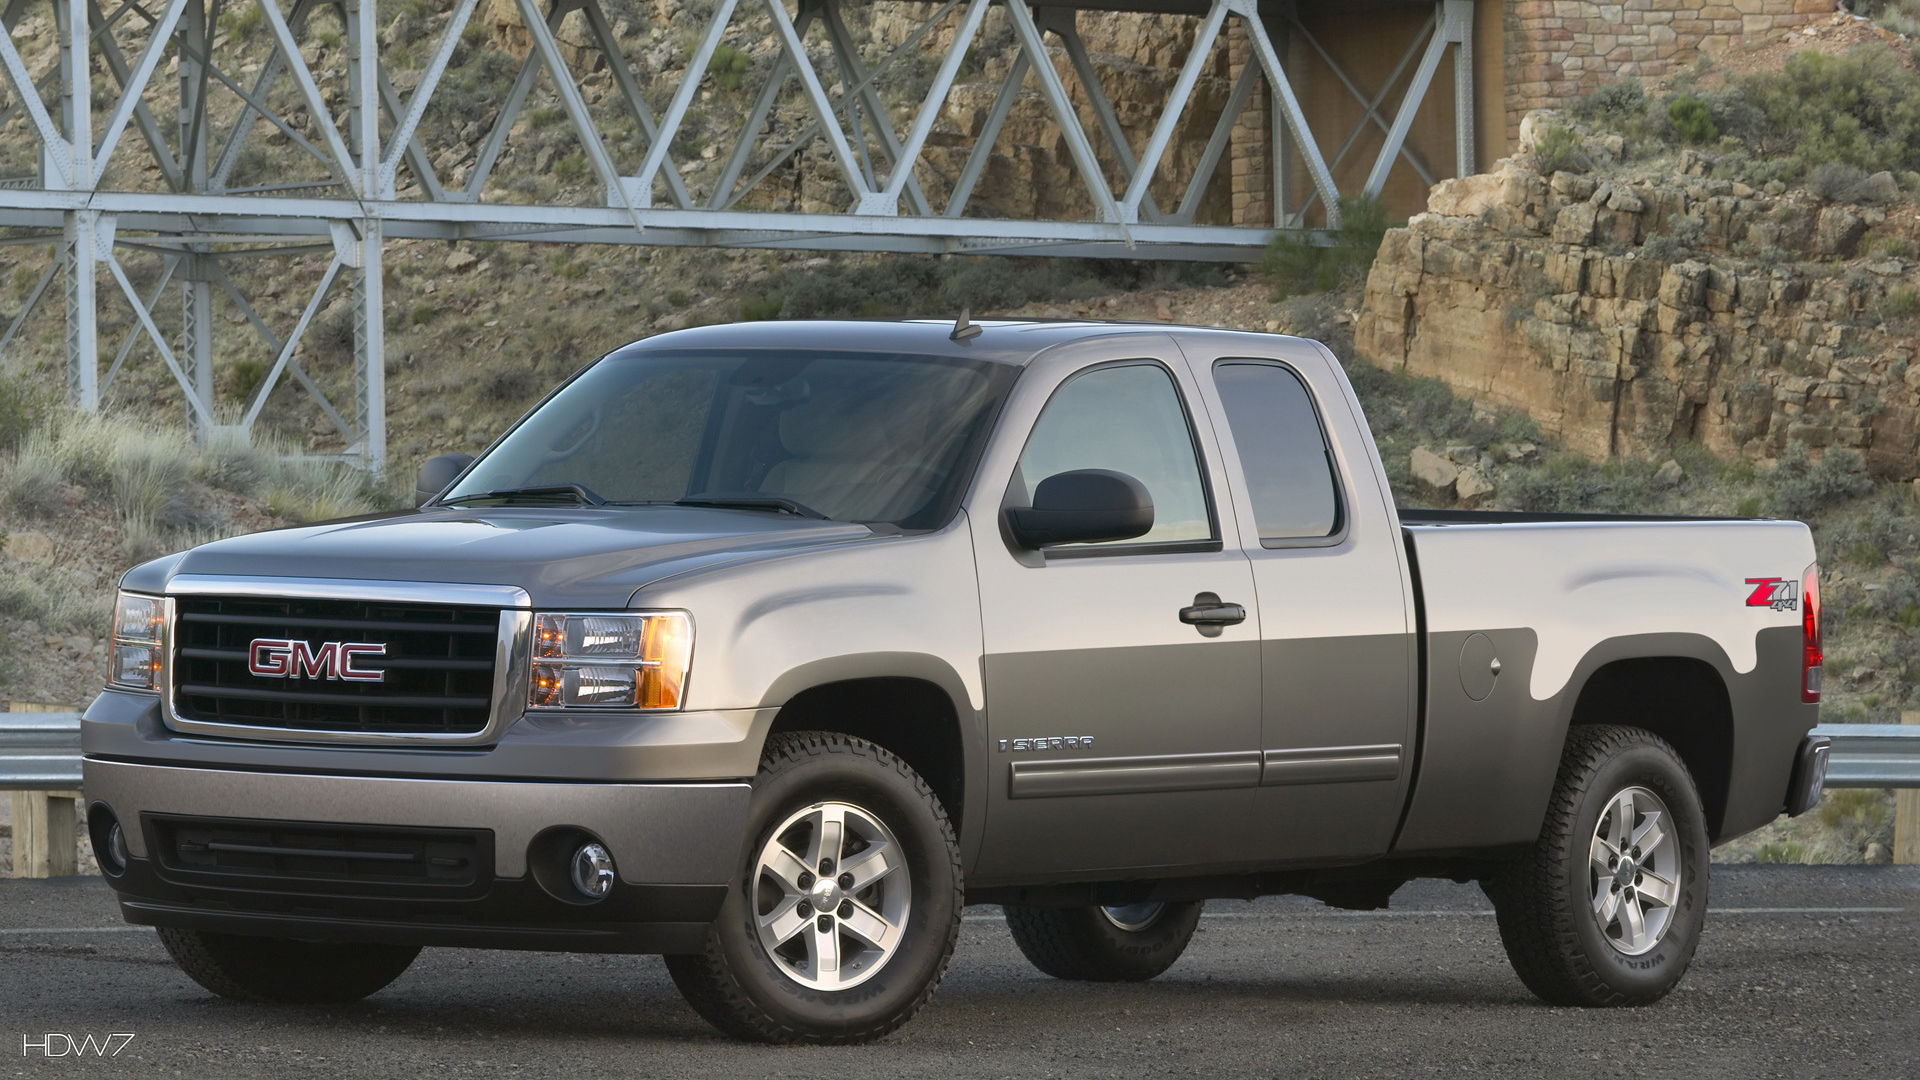 gmc sierra sle extended cab 2008 car hd wallpaper